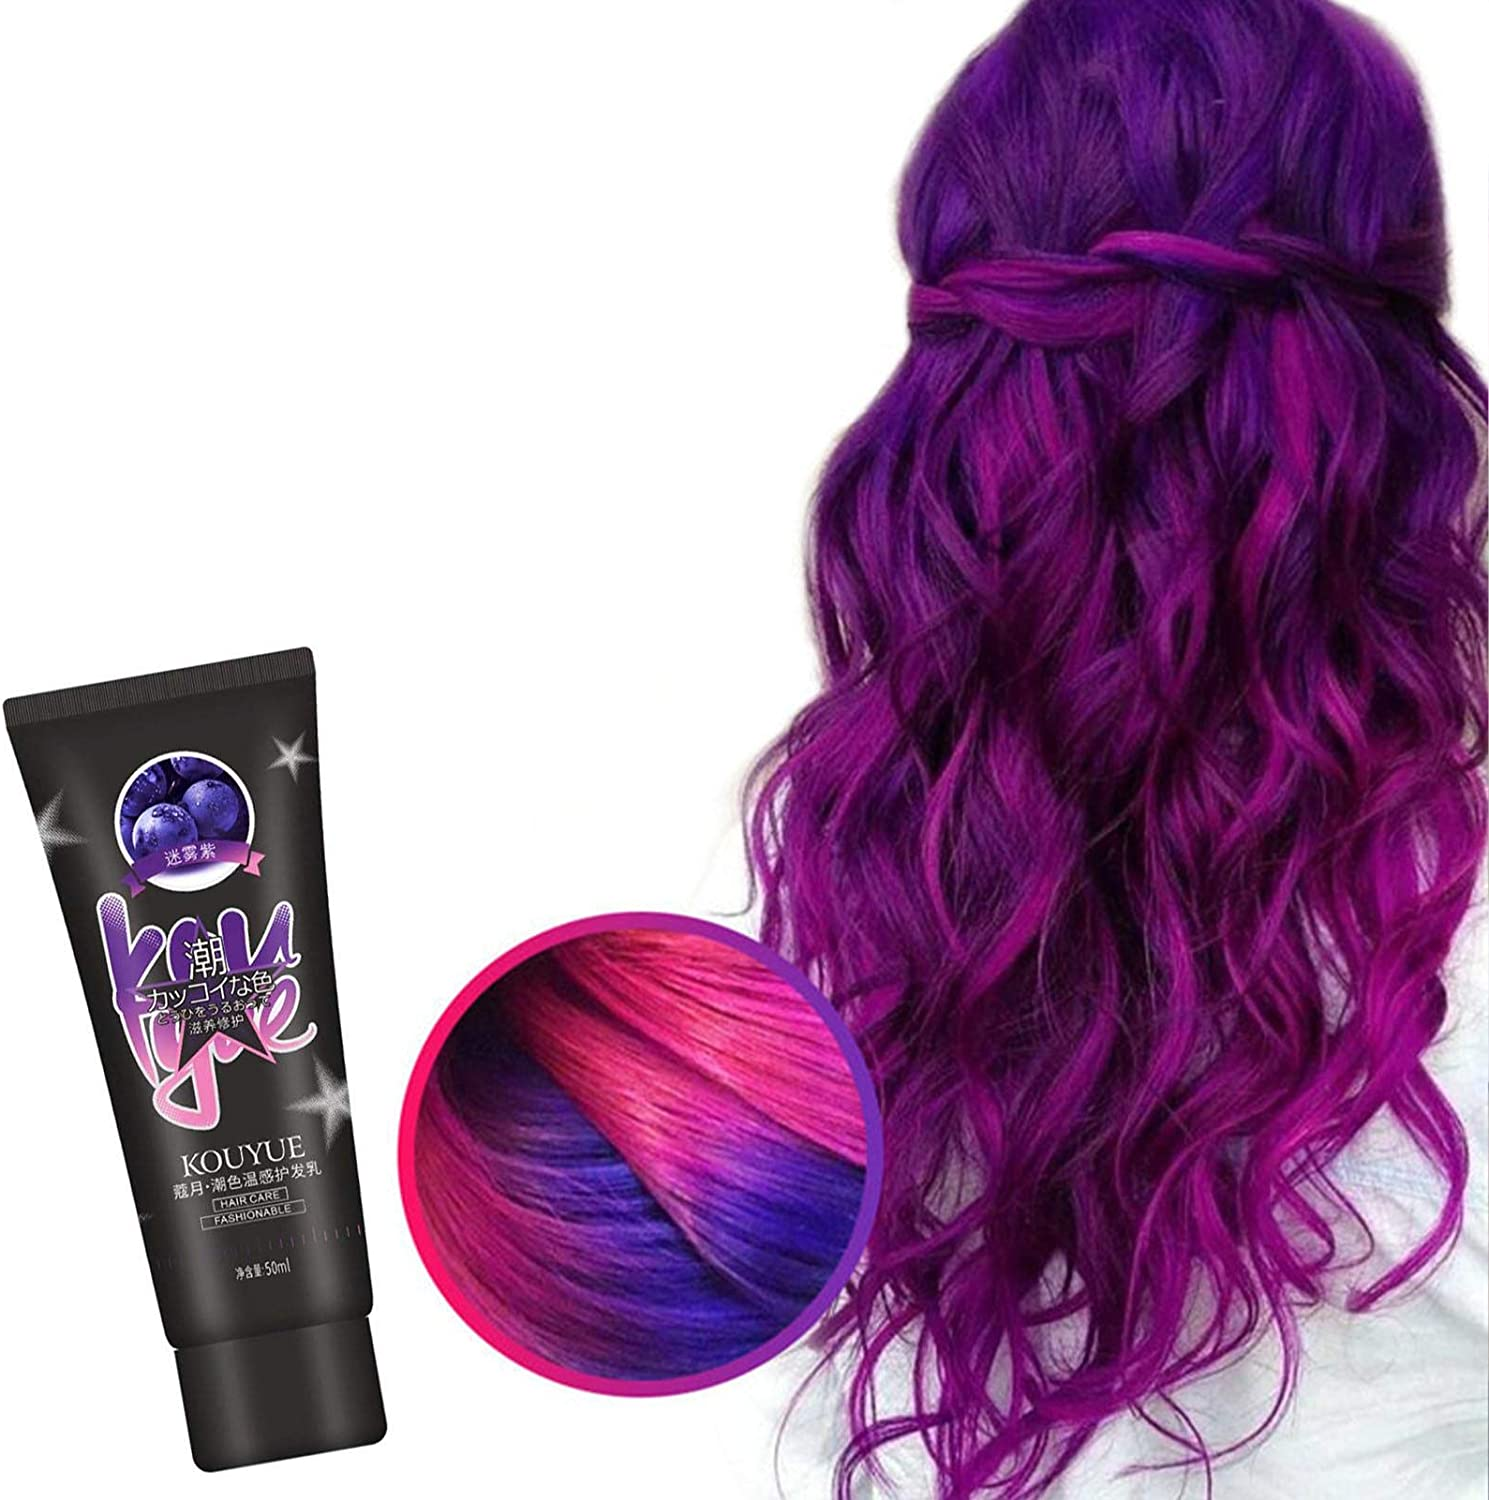 zapture Recommended Thermochromic Color Changing Wonder Cream Hair Dyes Translated Dye